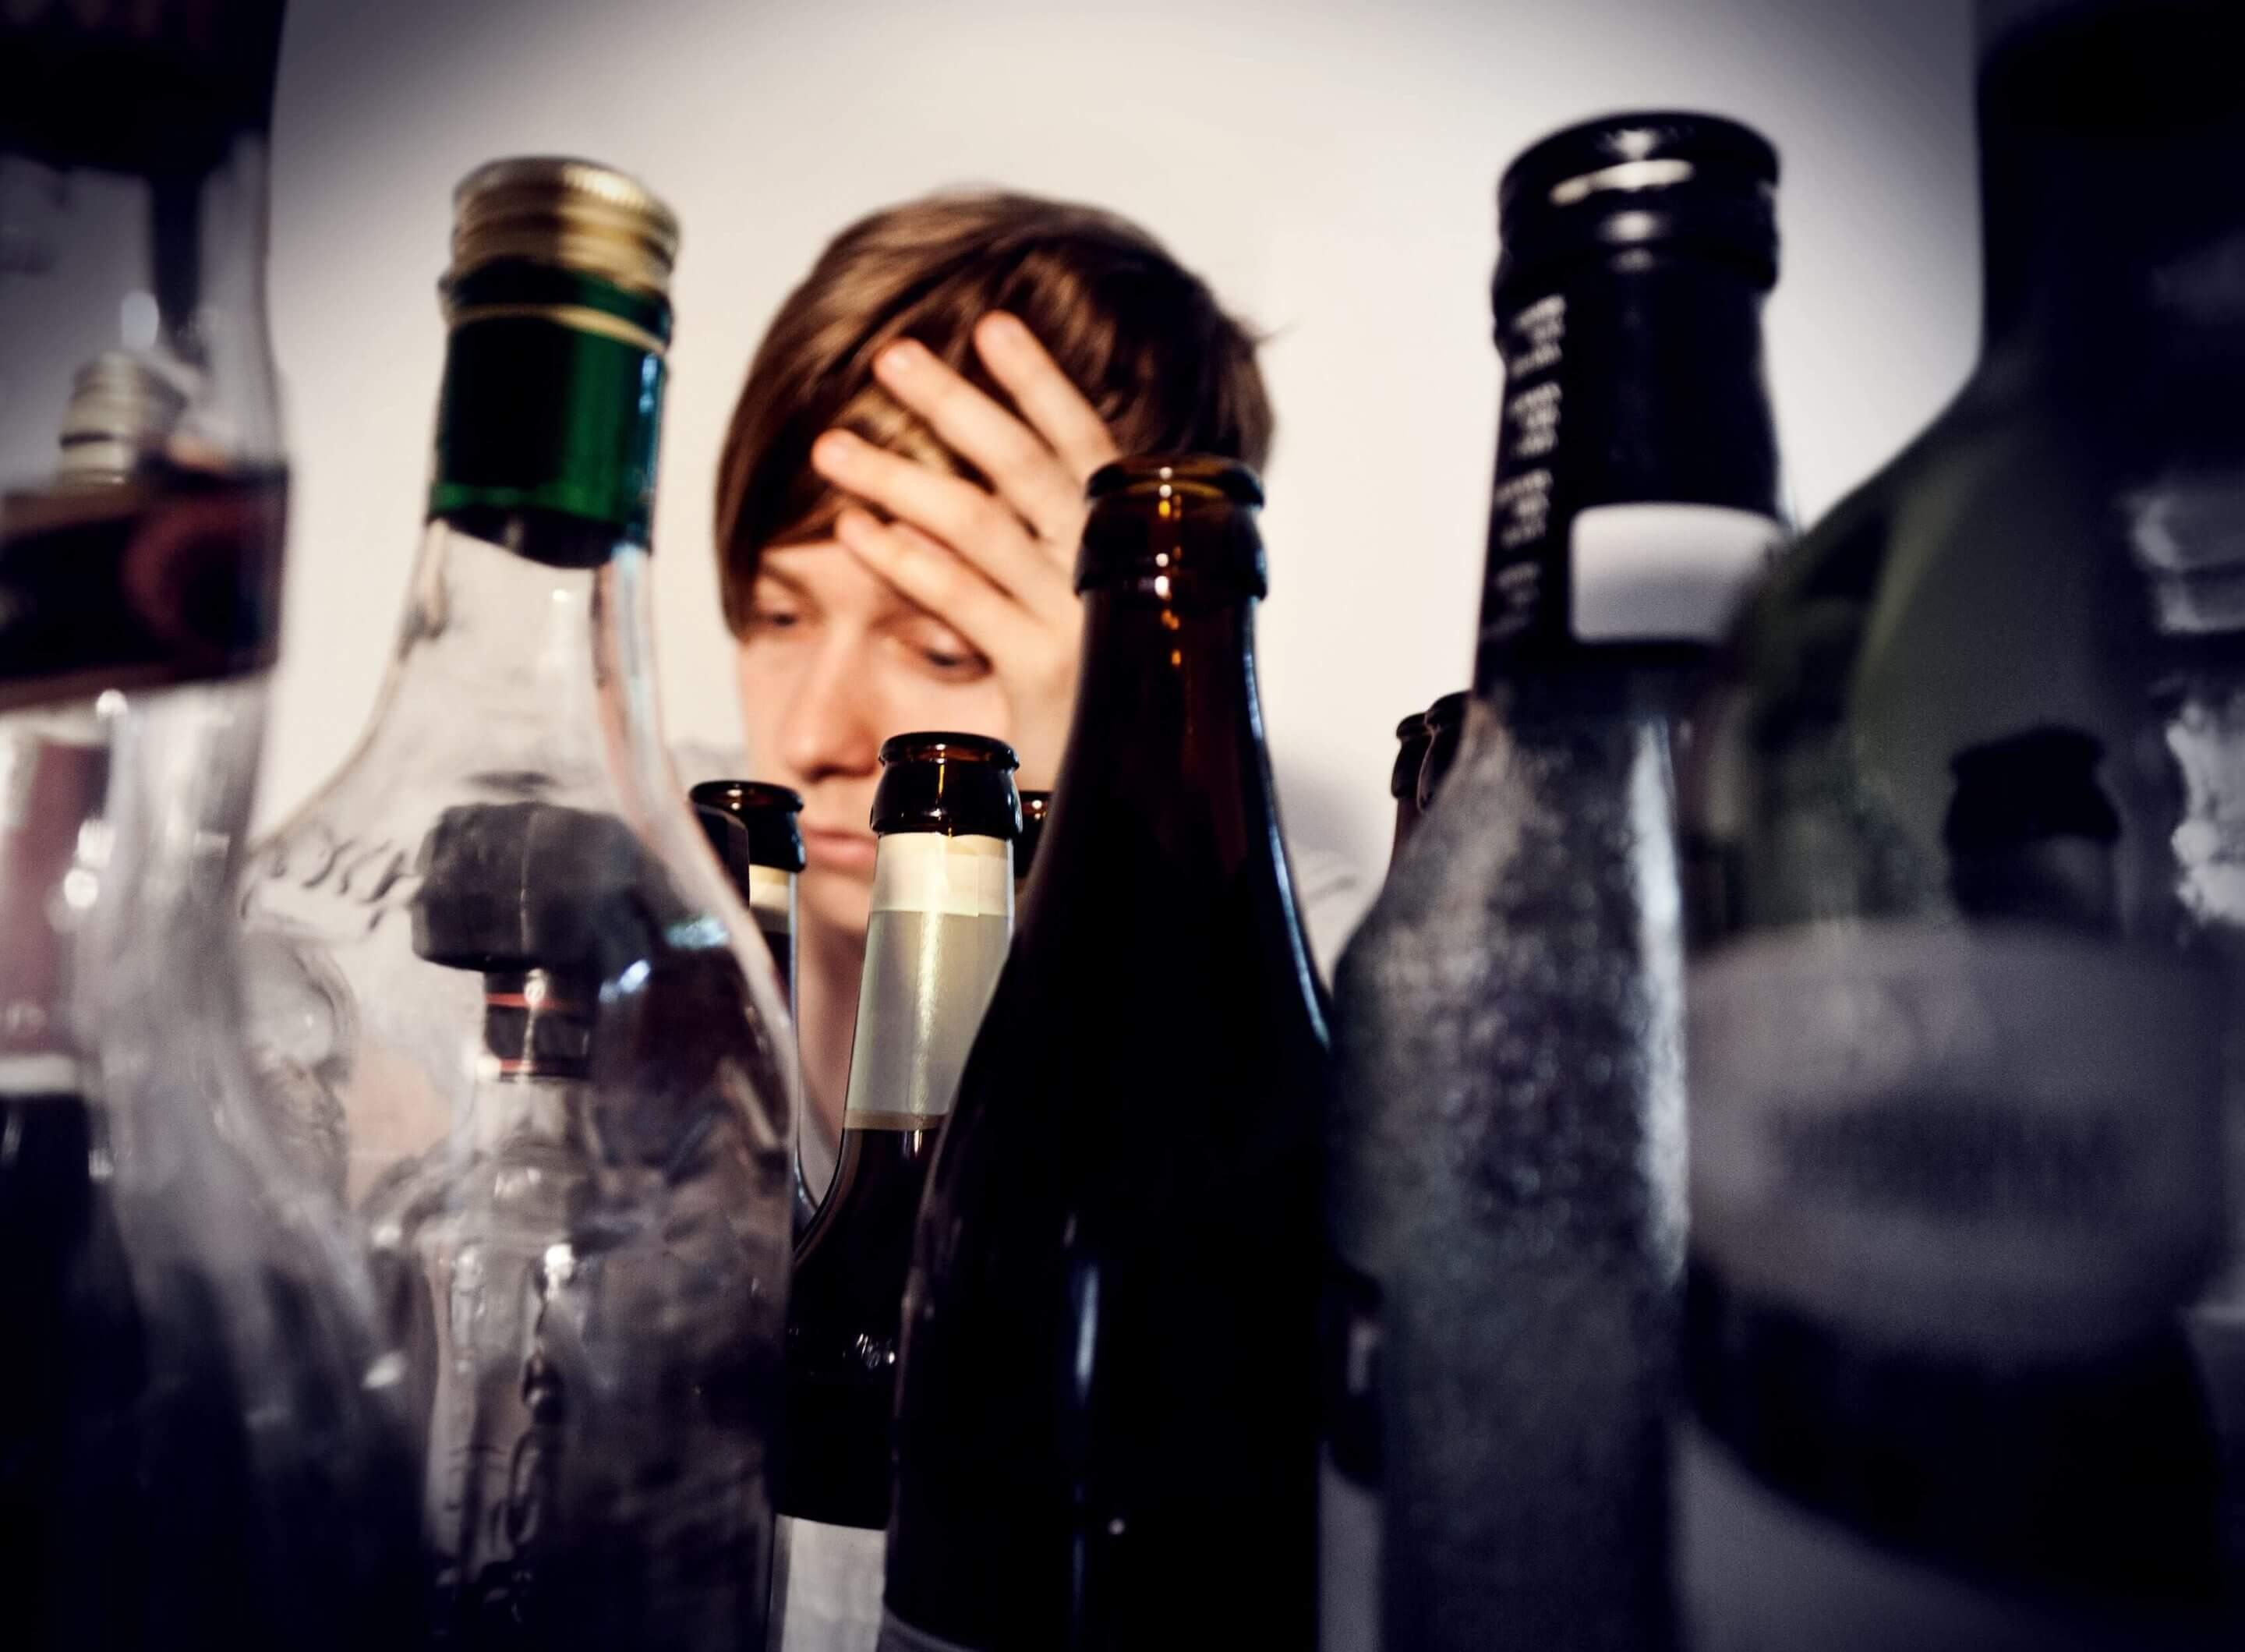 person suffering from alcohol withdrawal